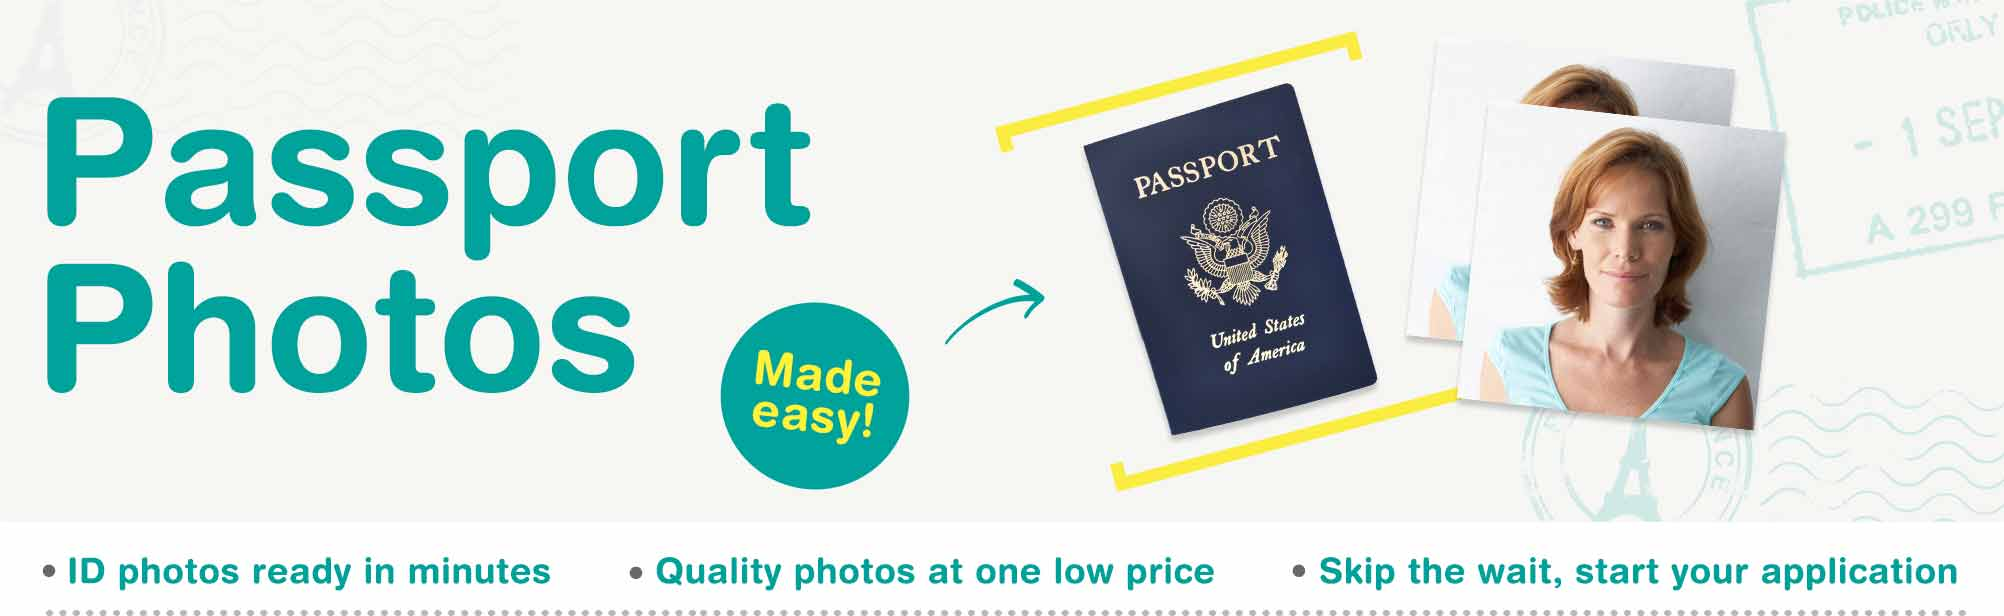 Passport Photos | Walgreens Photo